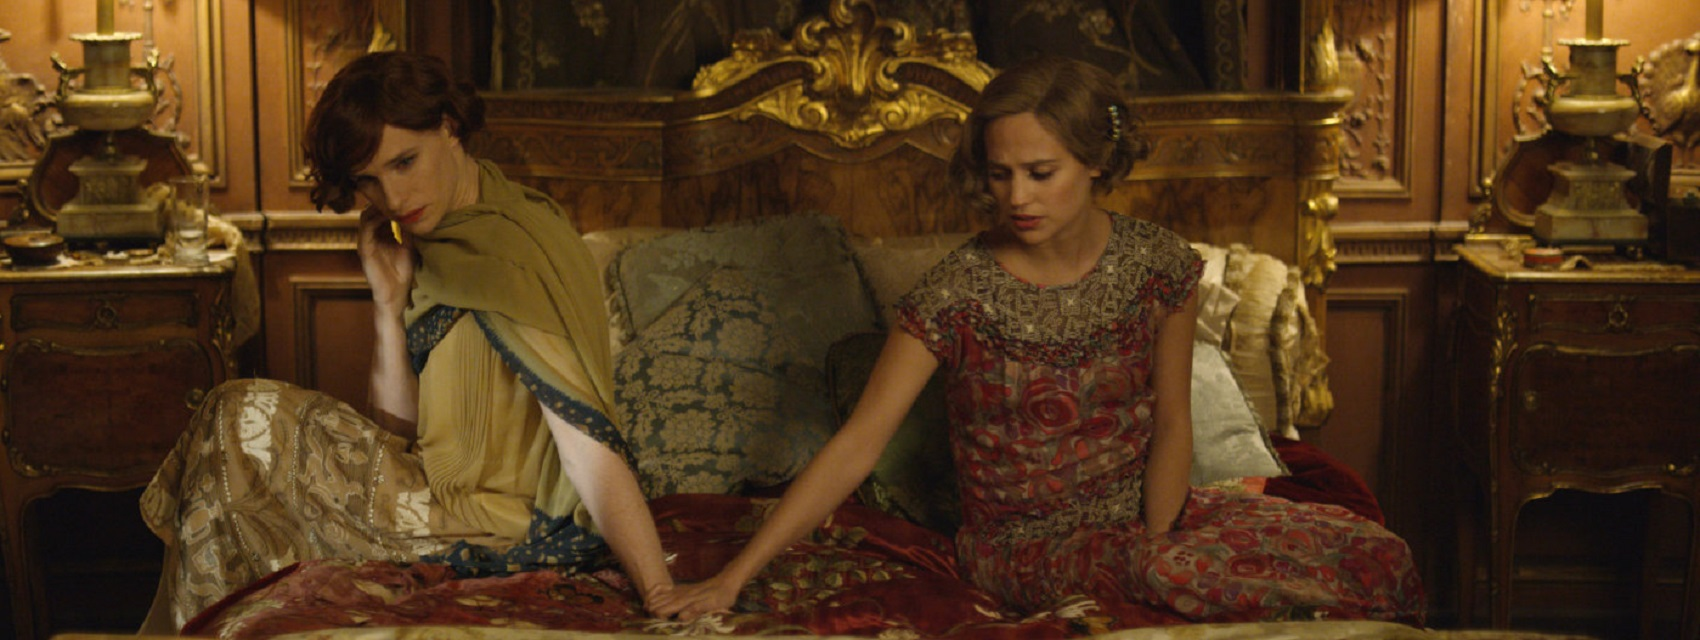 """The Danish Girl"" di Tom Hooper: come impedire il decollo di un grande affresco animato da autentici fuoriclasse"